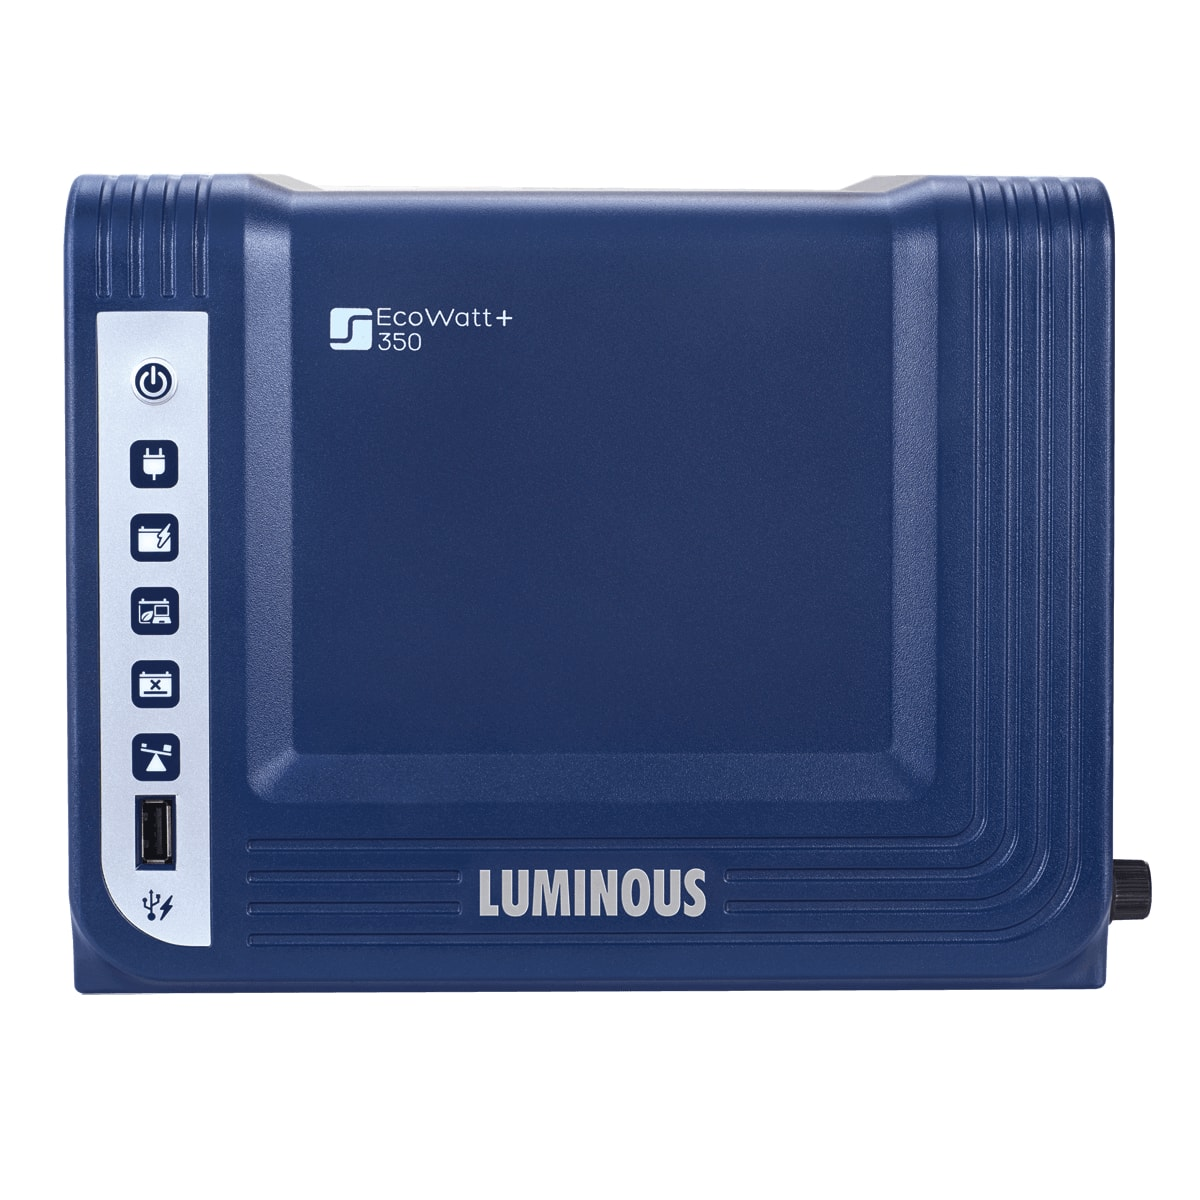 Luminous ECO Watt+ 350 Home UPS